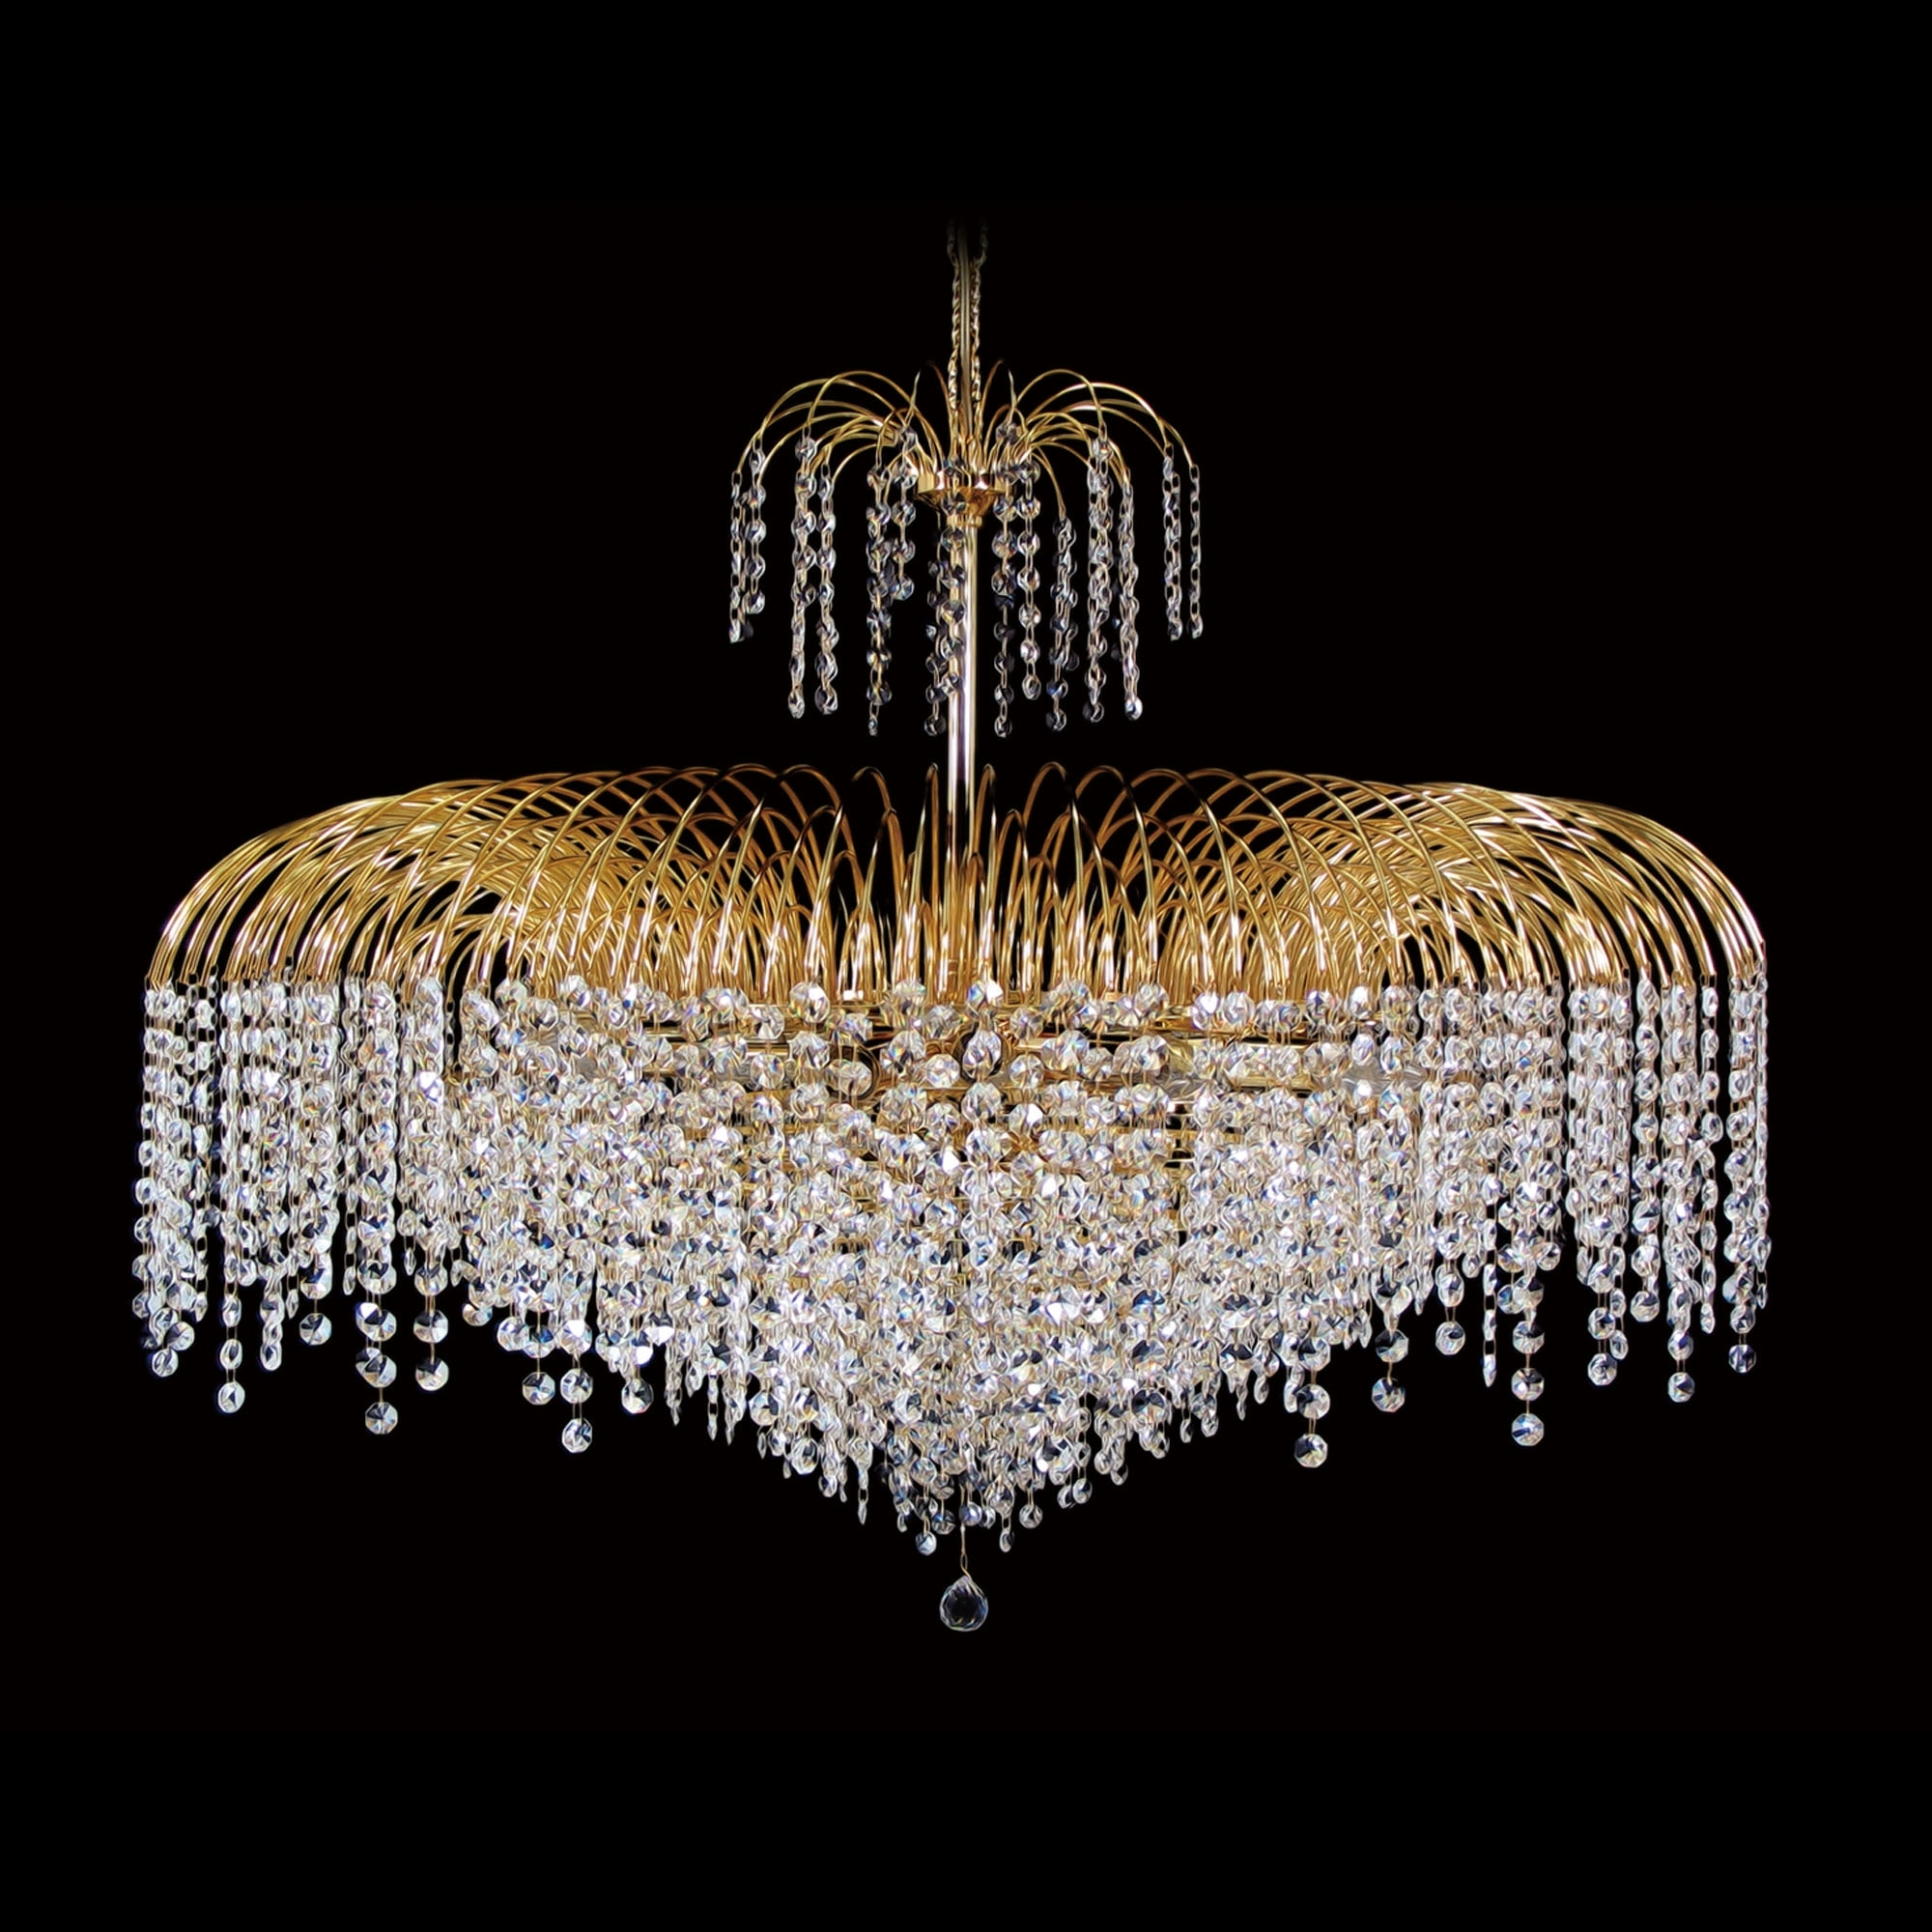 """2019 15 Light – 32"""" Asfour Lead Crystal 24Ct Gold Plated Waterfall With Regard To Crystal Waterfall Chandelier (View 1 of 20)"""